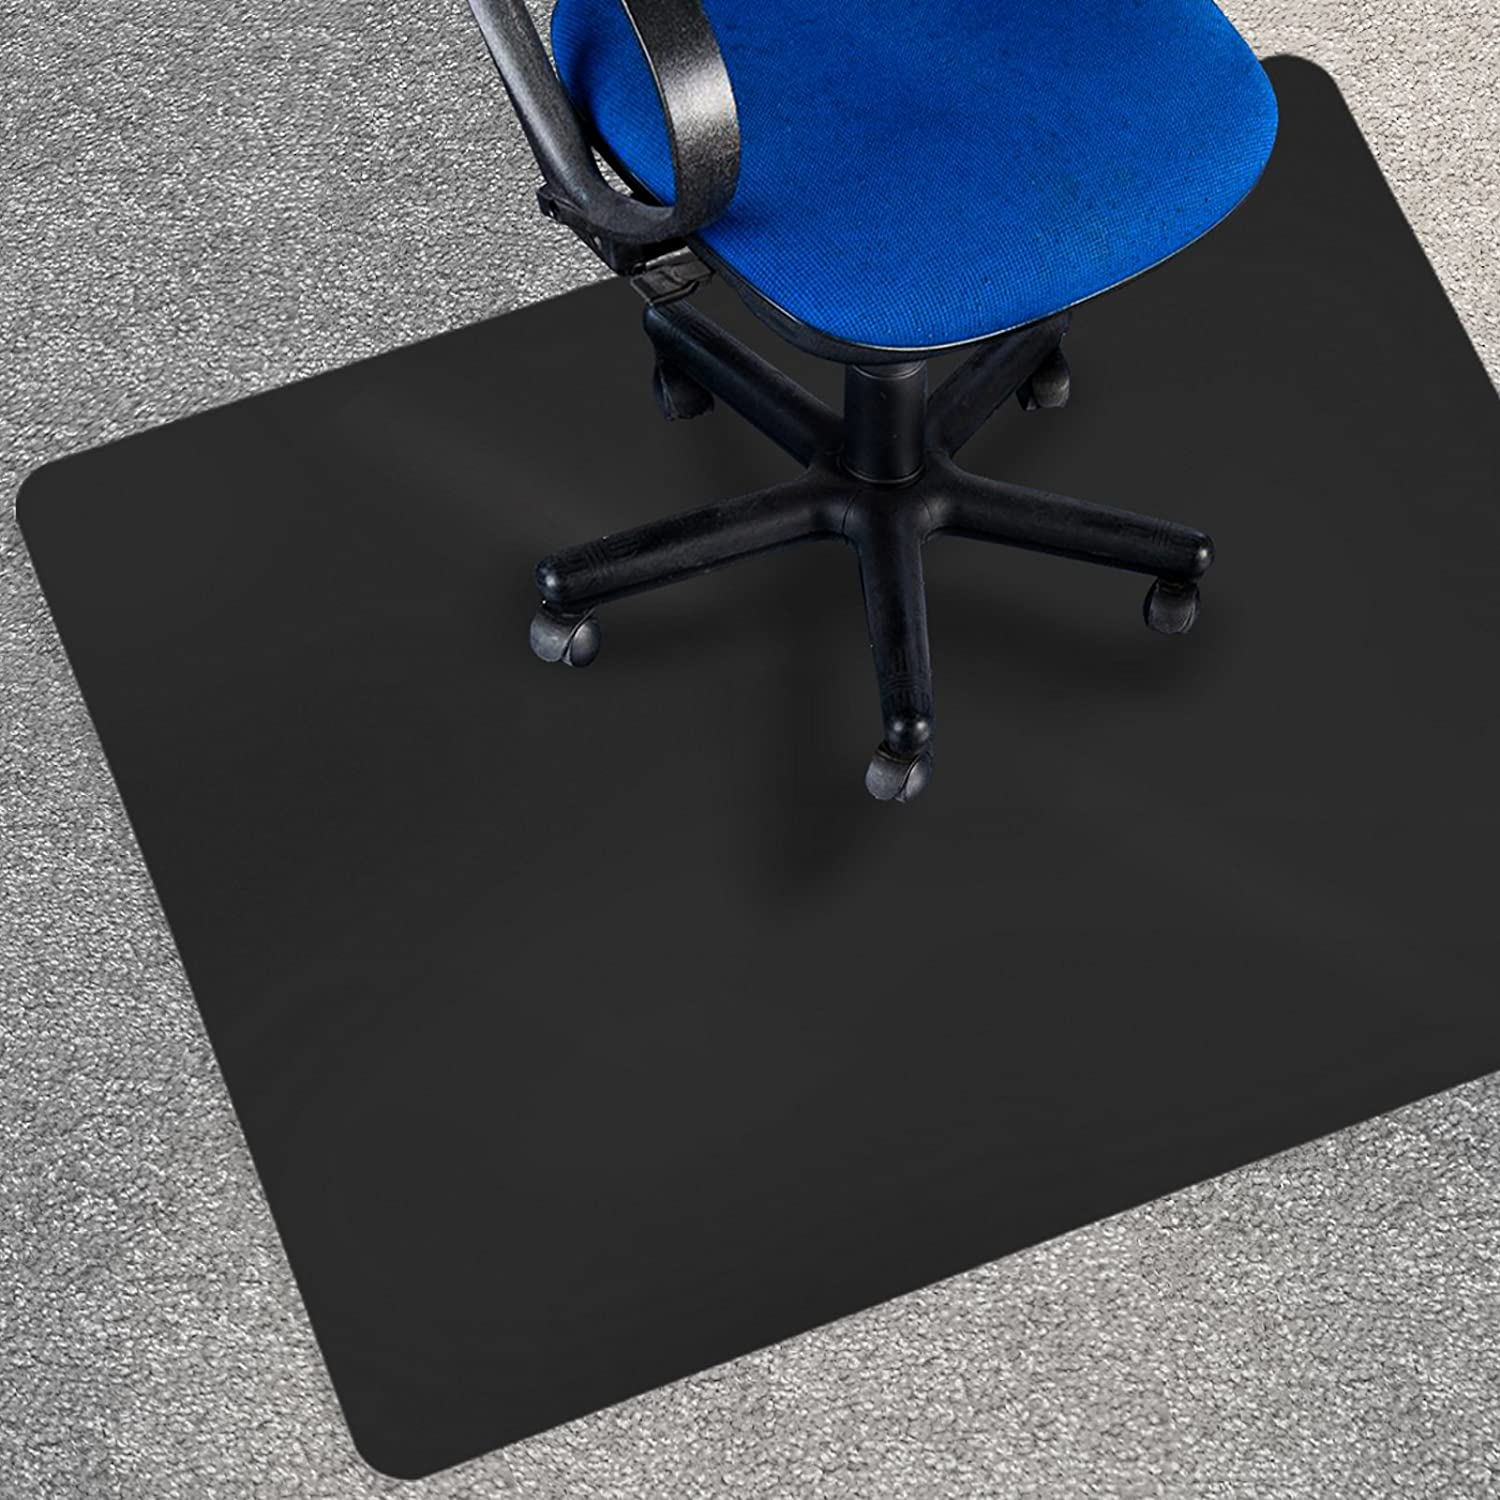 amazon com office marshal black office chair mat 36 x 48